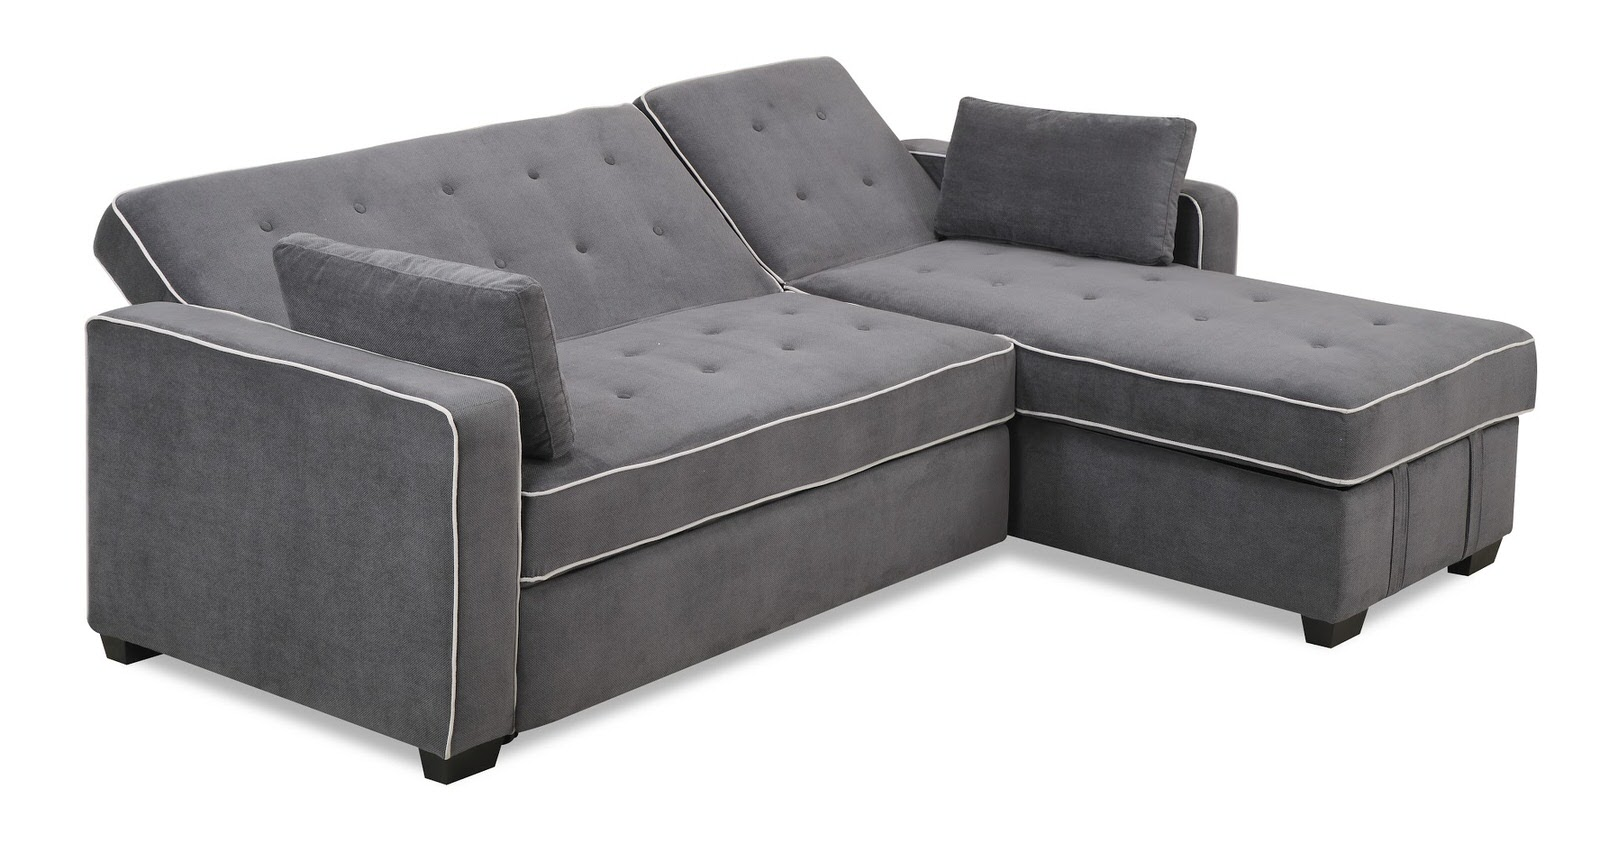 com wayfair sectional espresso marissa couch abfraleigh facing at faux pin leather left serta found it